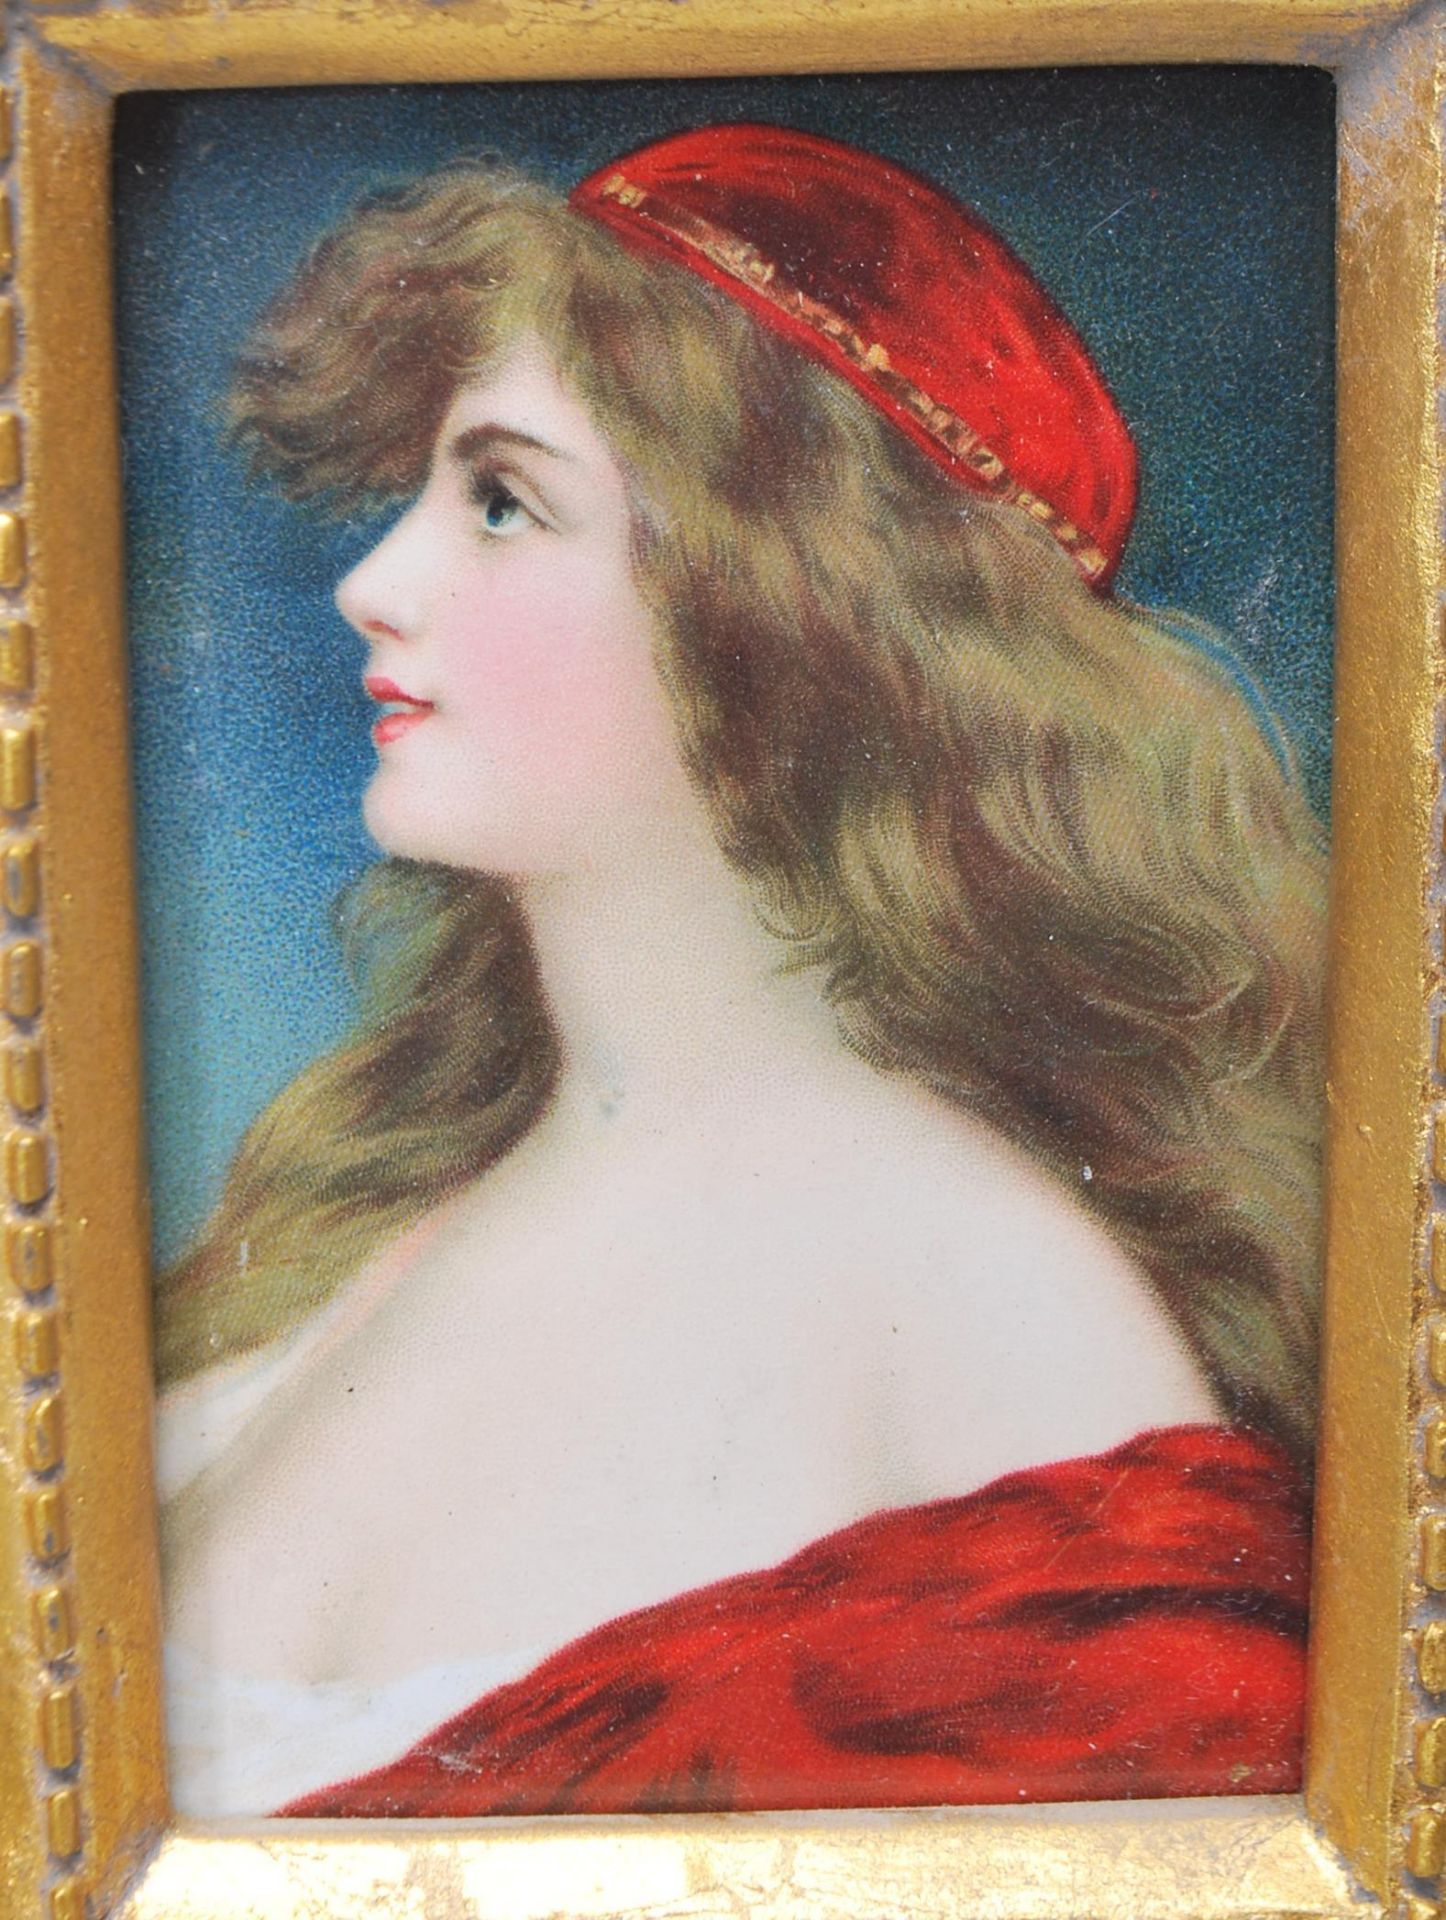 GROUP OF SIX ANTIQUE AND VINTAGE MINIATURE PORTRAITS - TWO HAND PAINTED - Image 4 of 8